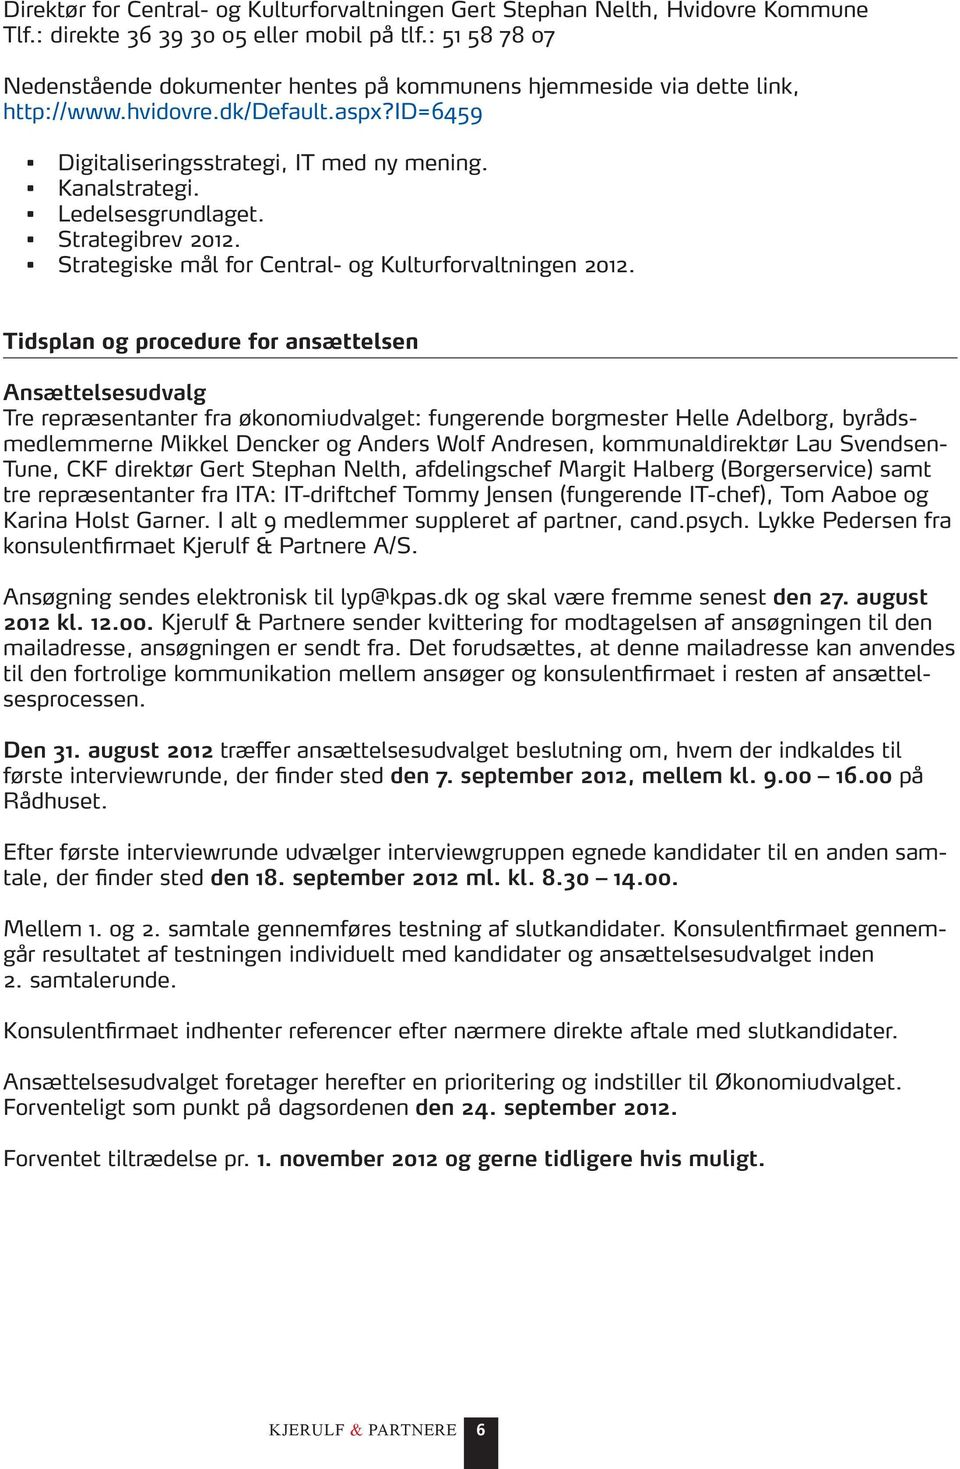 Ledelsesgrundlaget. Strategibrev 2012. Strategiske mål for Central- og Kulturforvaltningen 2012.